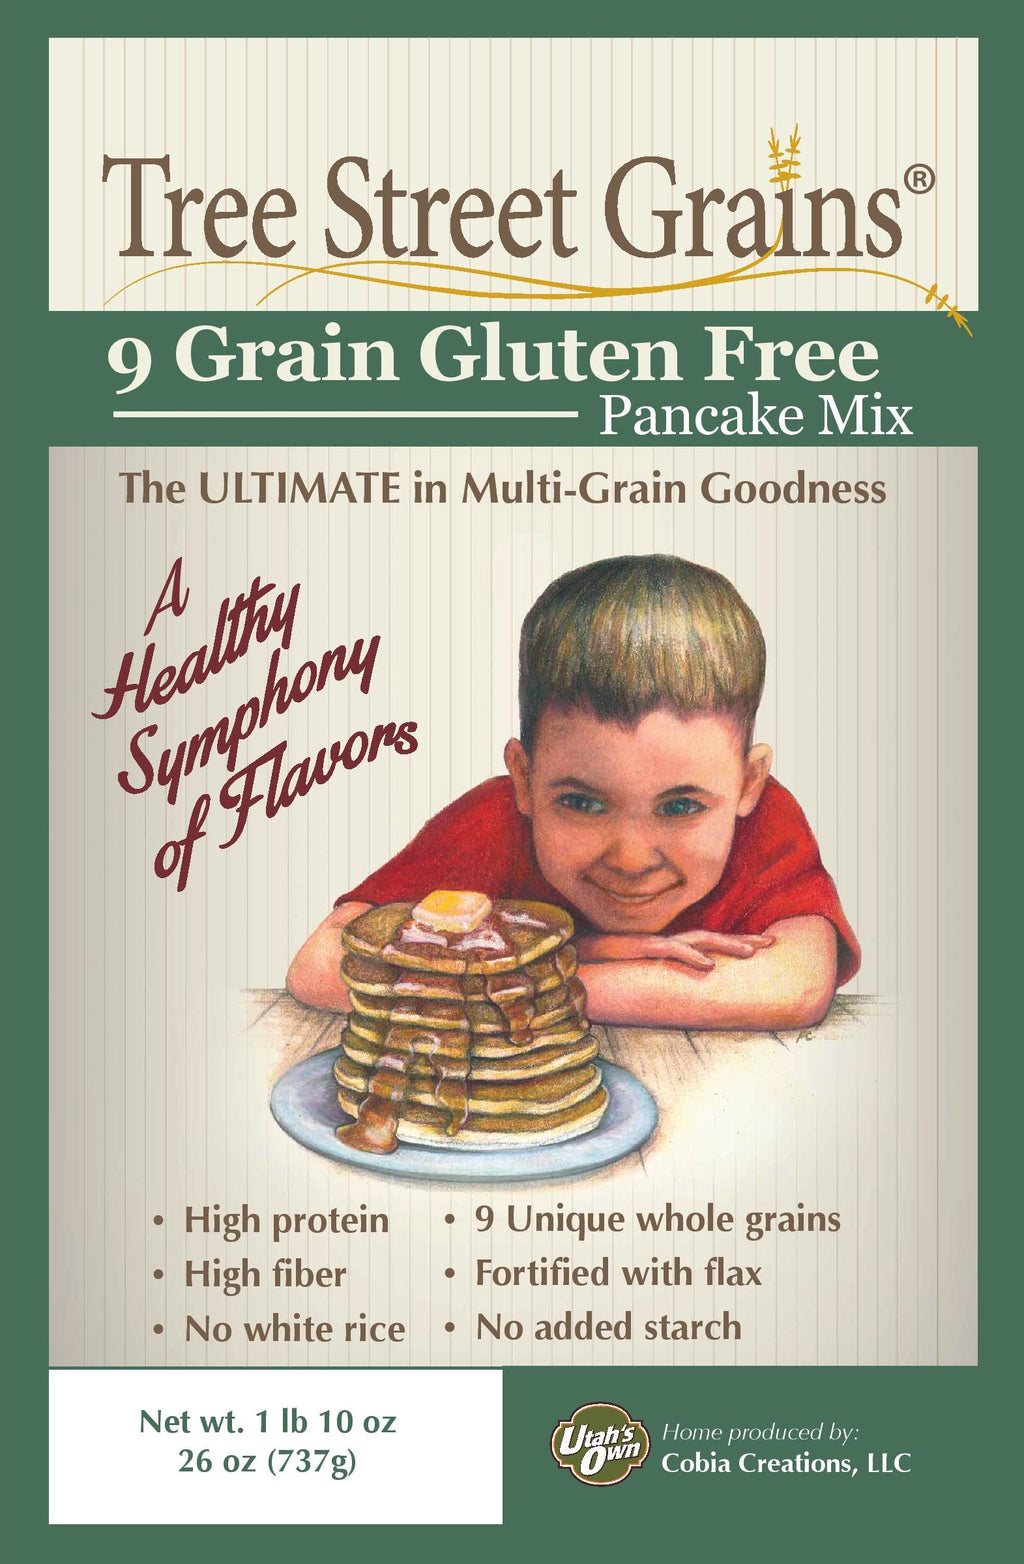 Gluten Free Whole Grain Pancake Mix